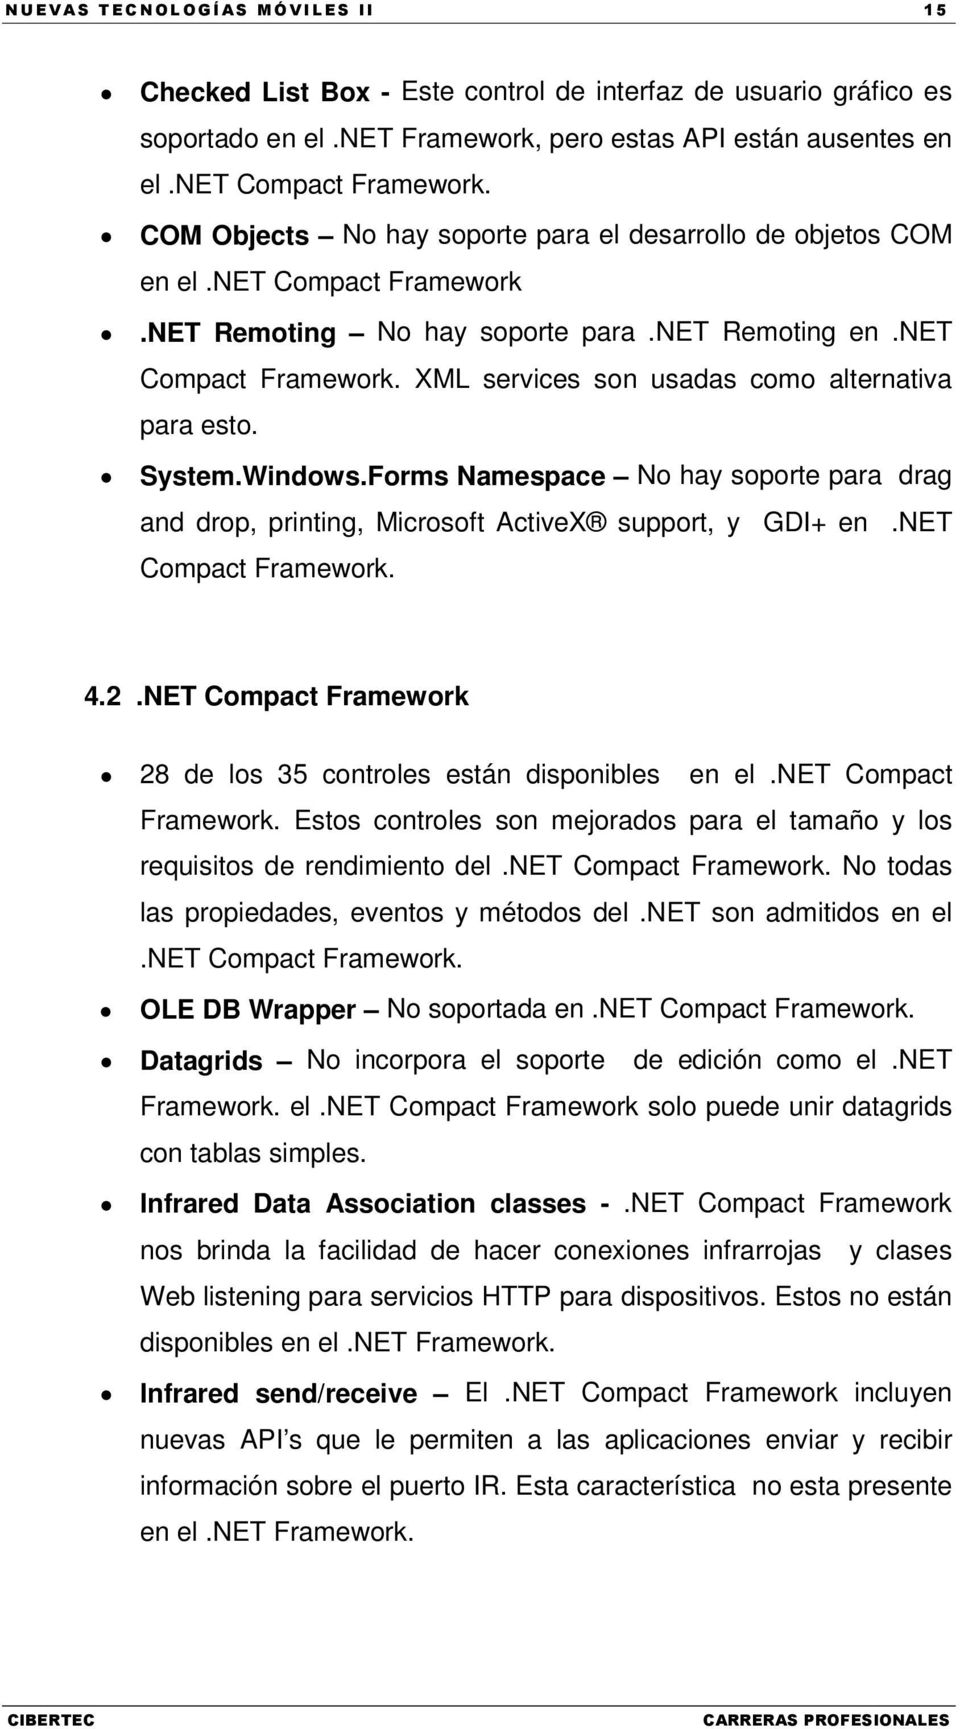 System.Windows.Forms Namespace No hay soporte para drag and drop, printing, Microsoft ActiveX support, y GDI+ en.net Compact Framework. 4.2.